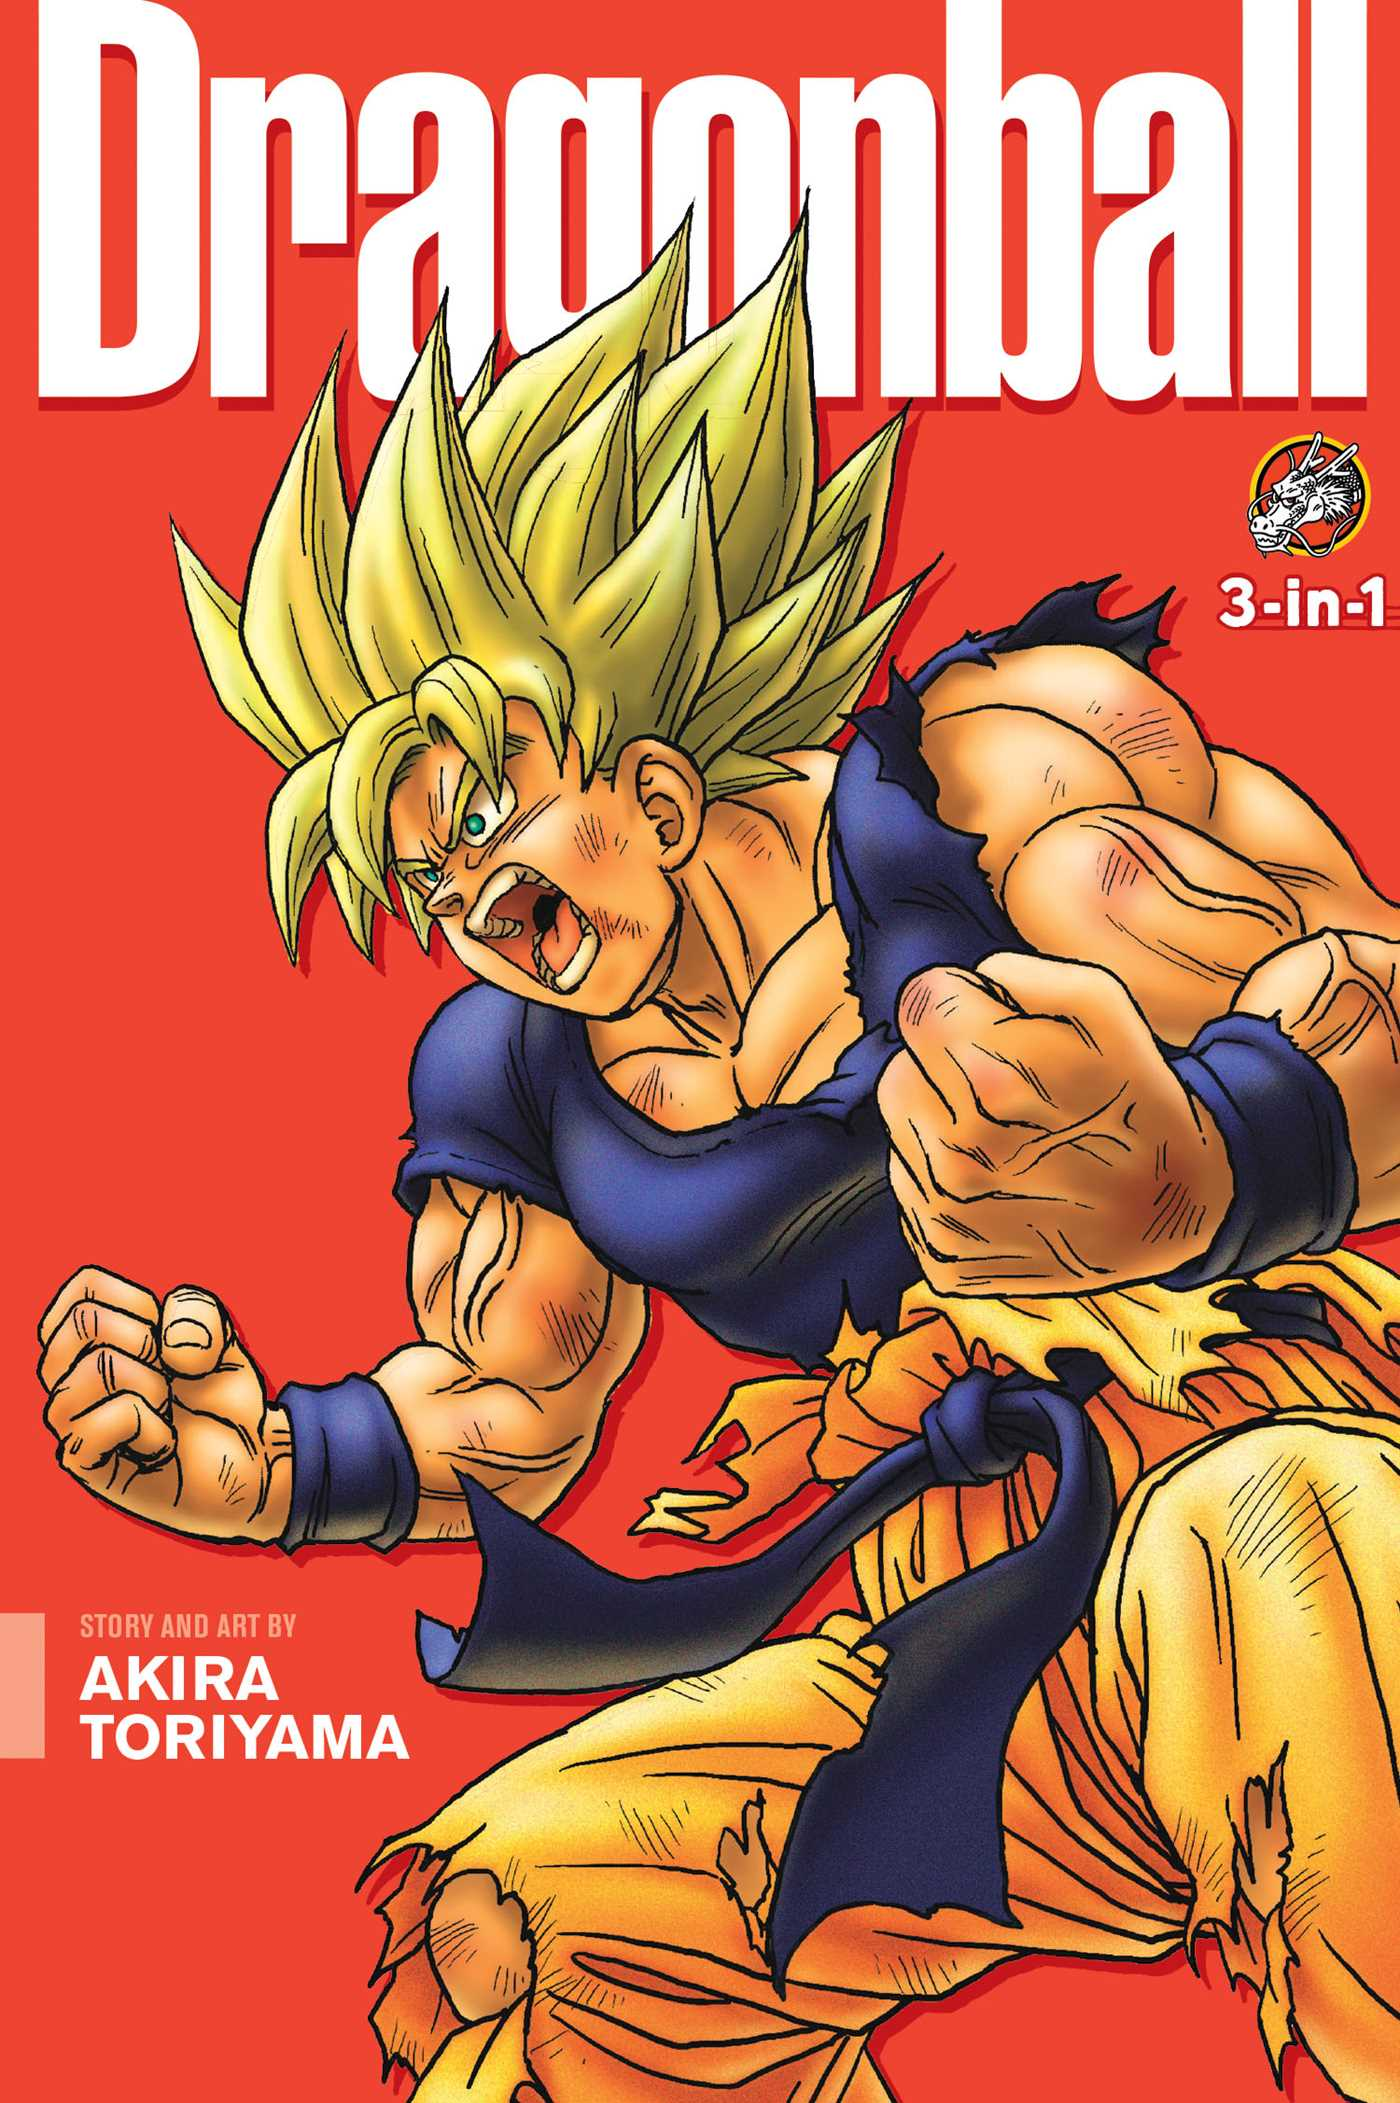 Dragon Ball 3 In 1 Edition Vol 9 Book By Akira Toriyama Official Publisher Page Simon